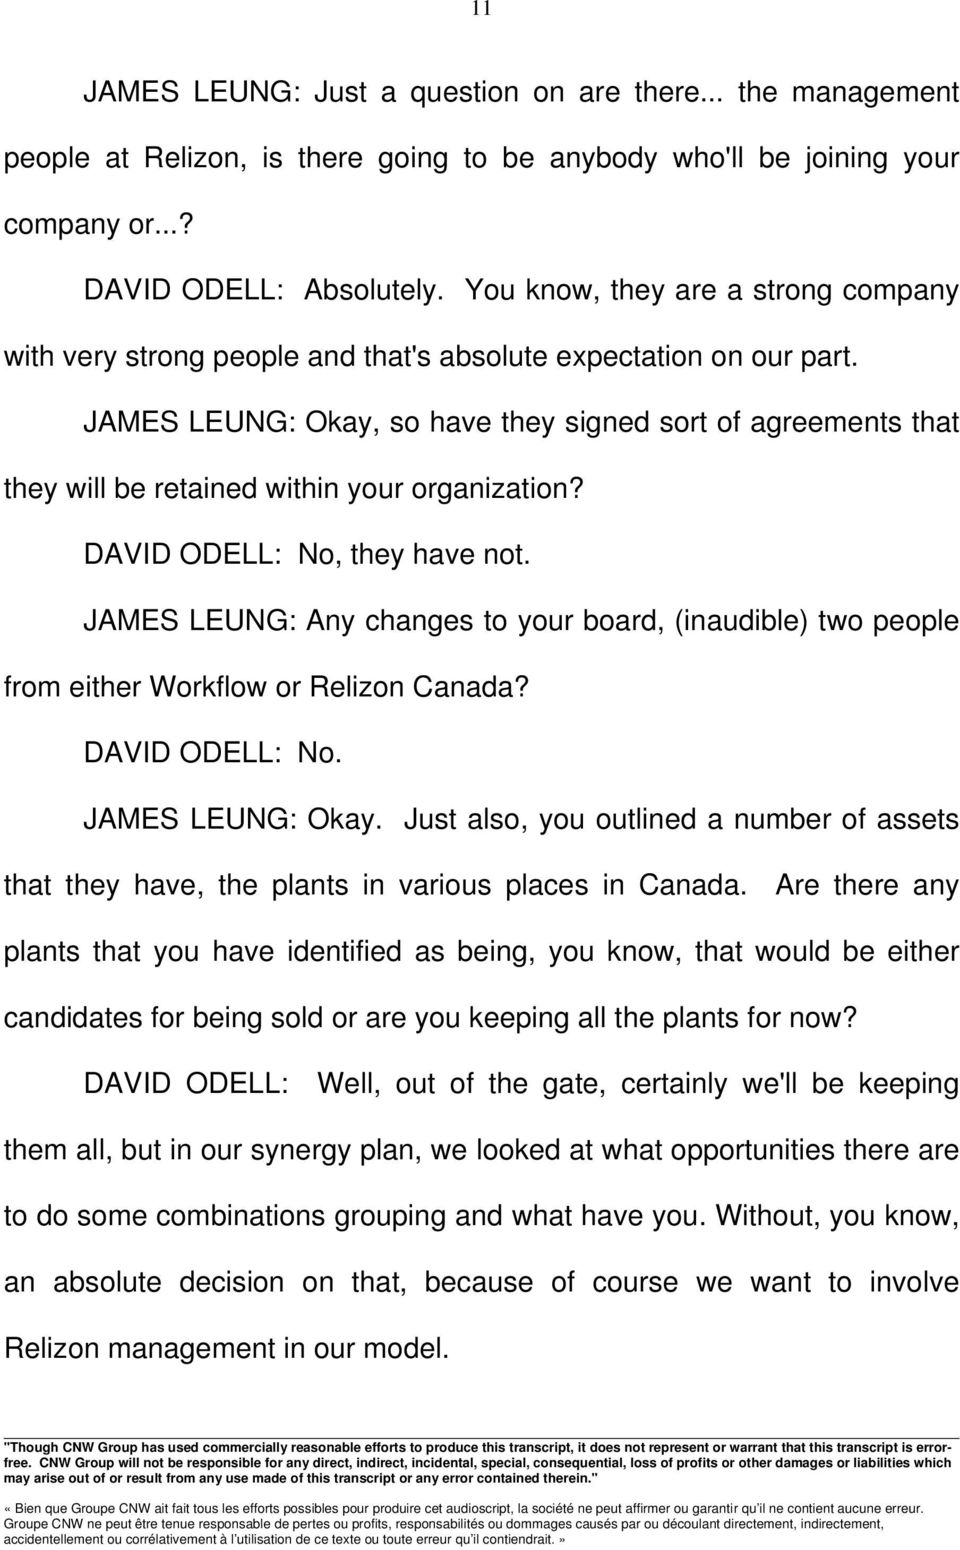 JAMES LEUNG: Okay, so have they signed sort of agreements that they will be retained within your organization? DAVID ODELL: No, they have not.